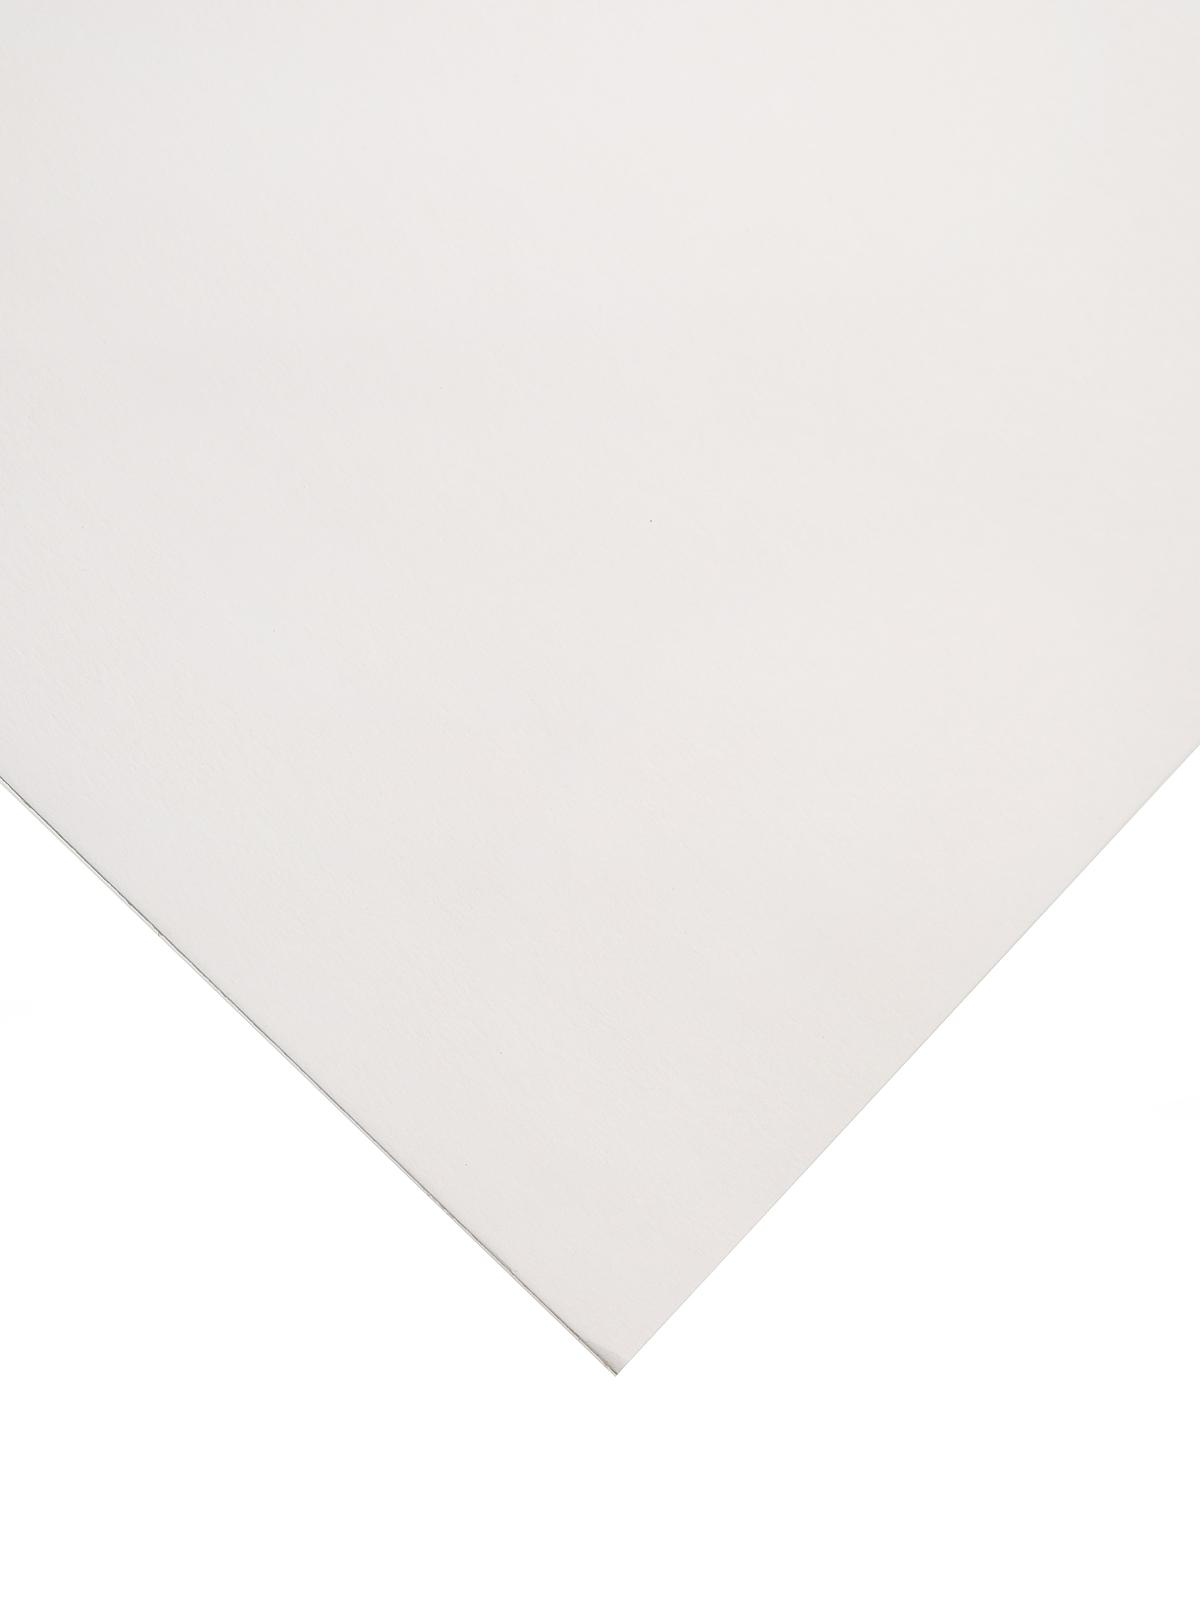 Hot Press Illustration Boards 20 In. X 30 In. Each No. 20